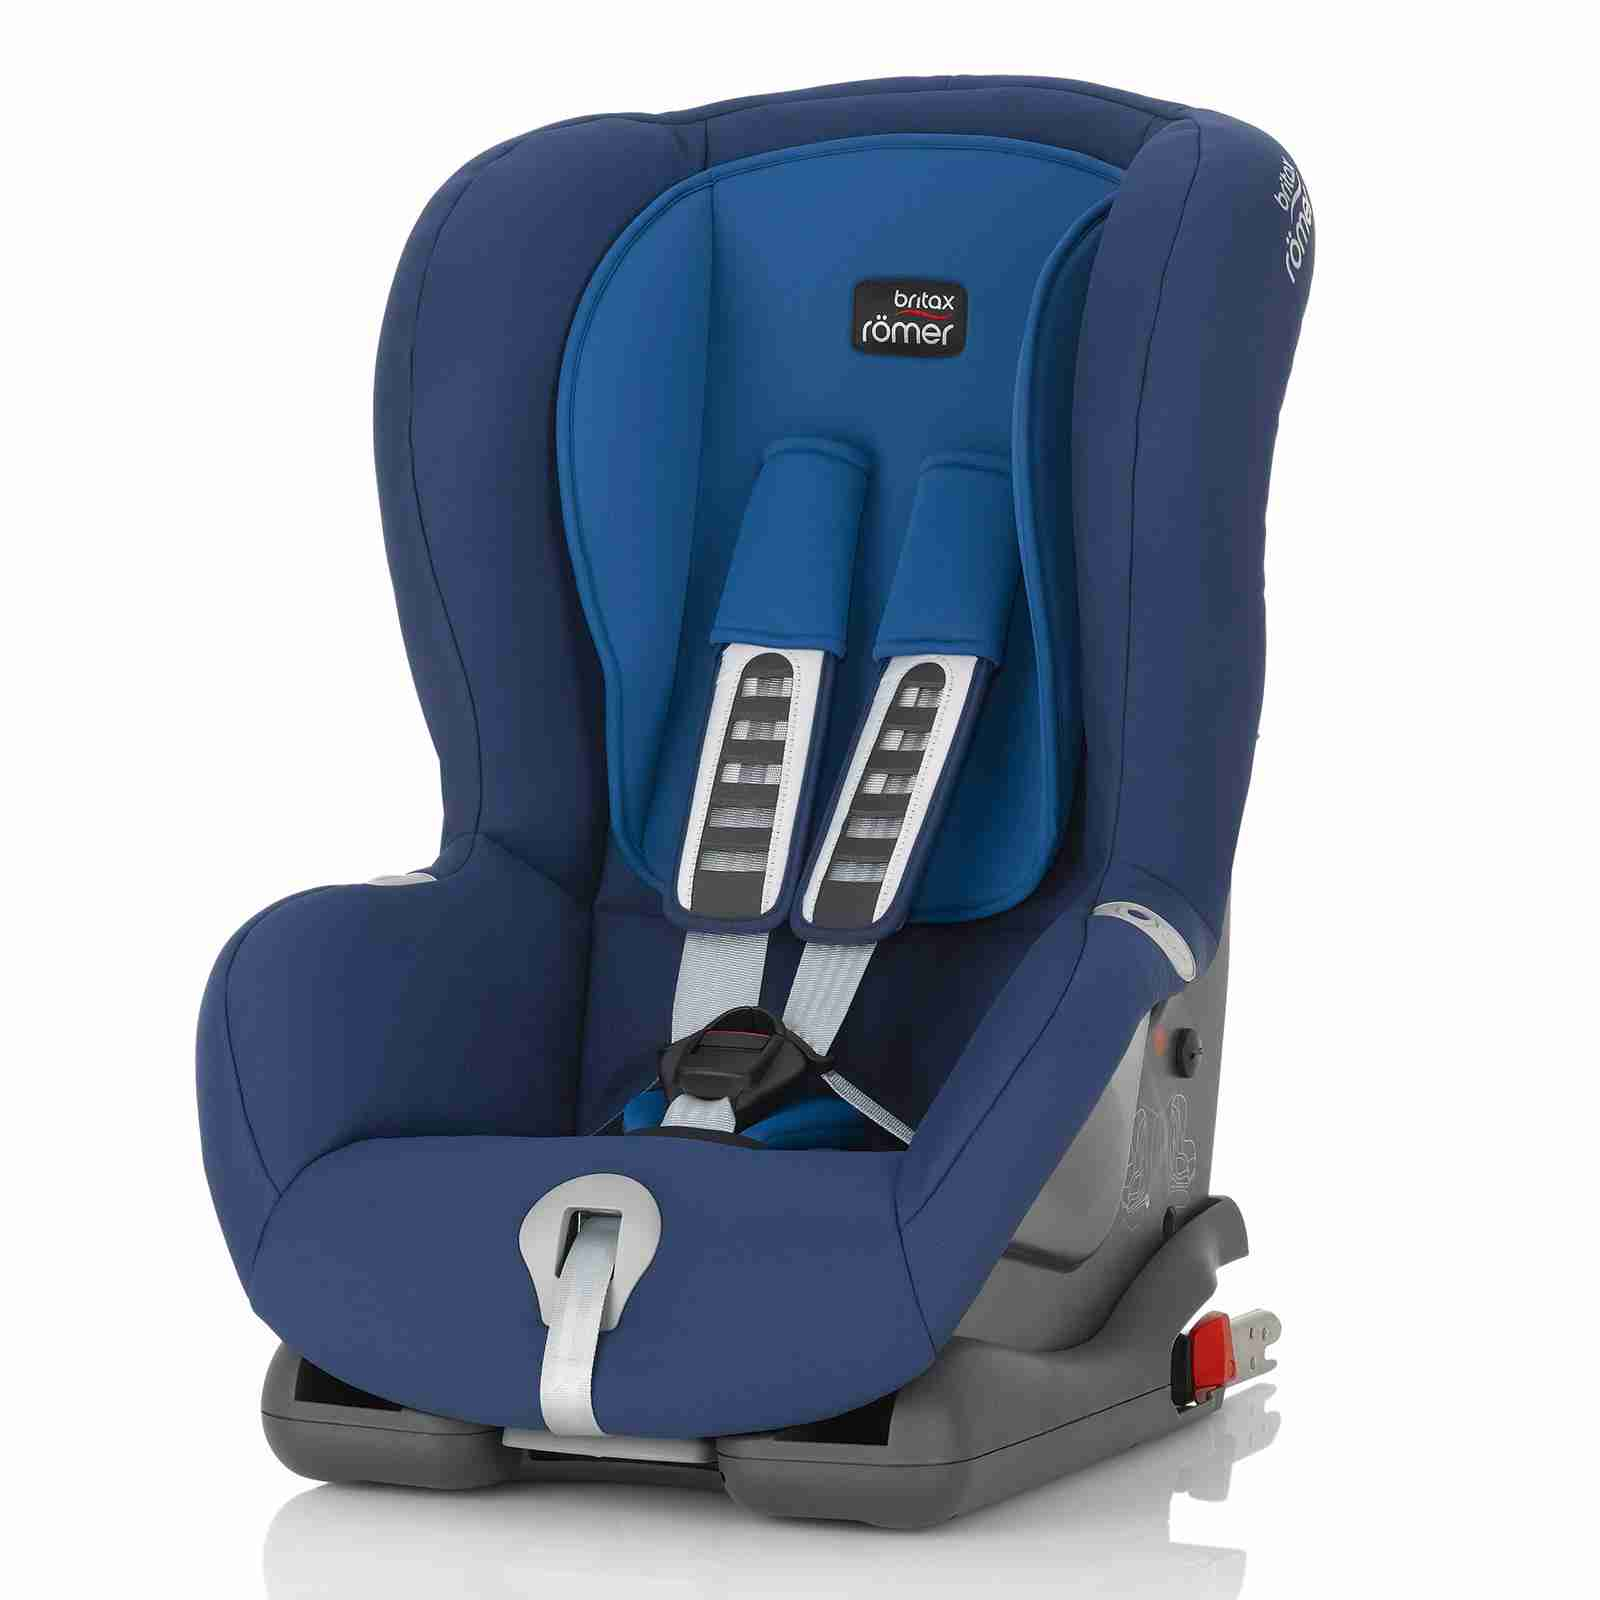 britax r mer duo plus autostoel ocean blue beste keuze autostoel. Black Bedroom Furniture Sets. Home Design Ideas